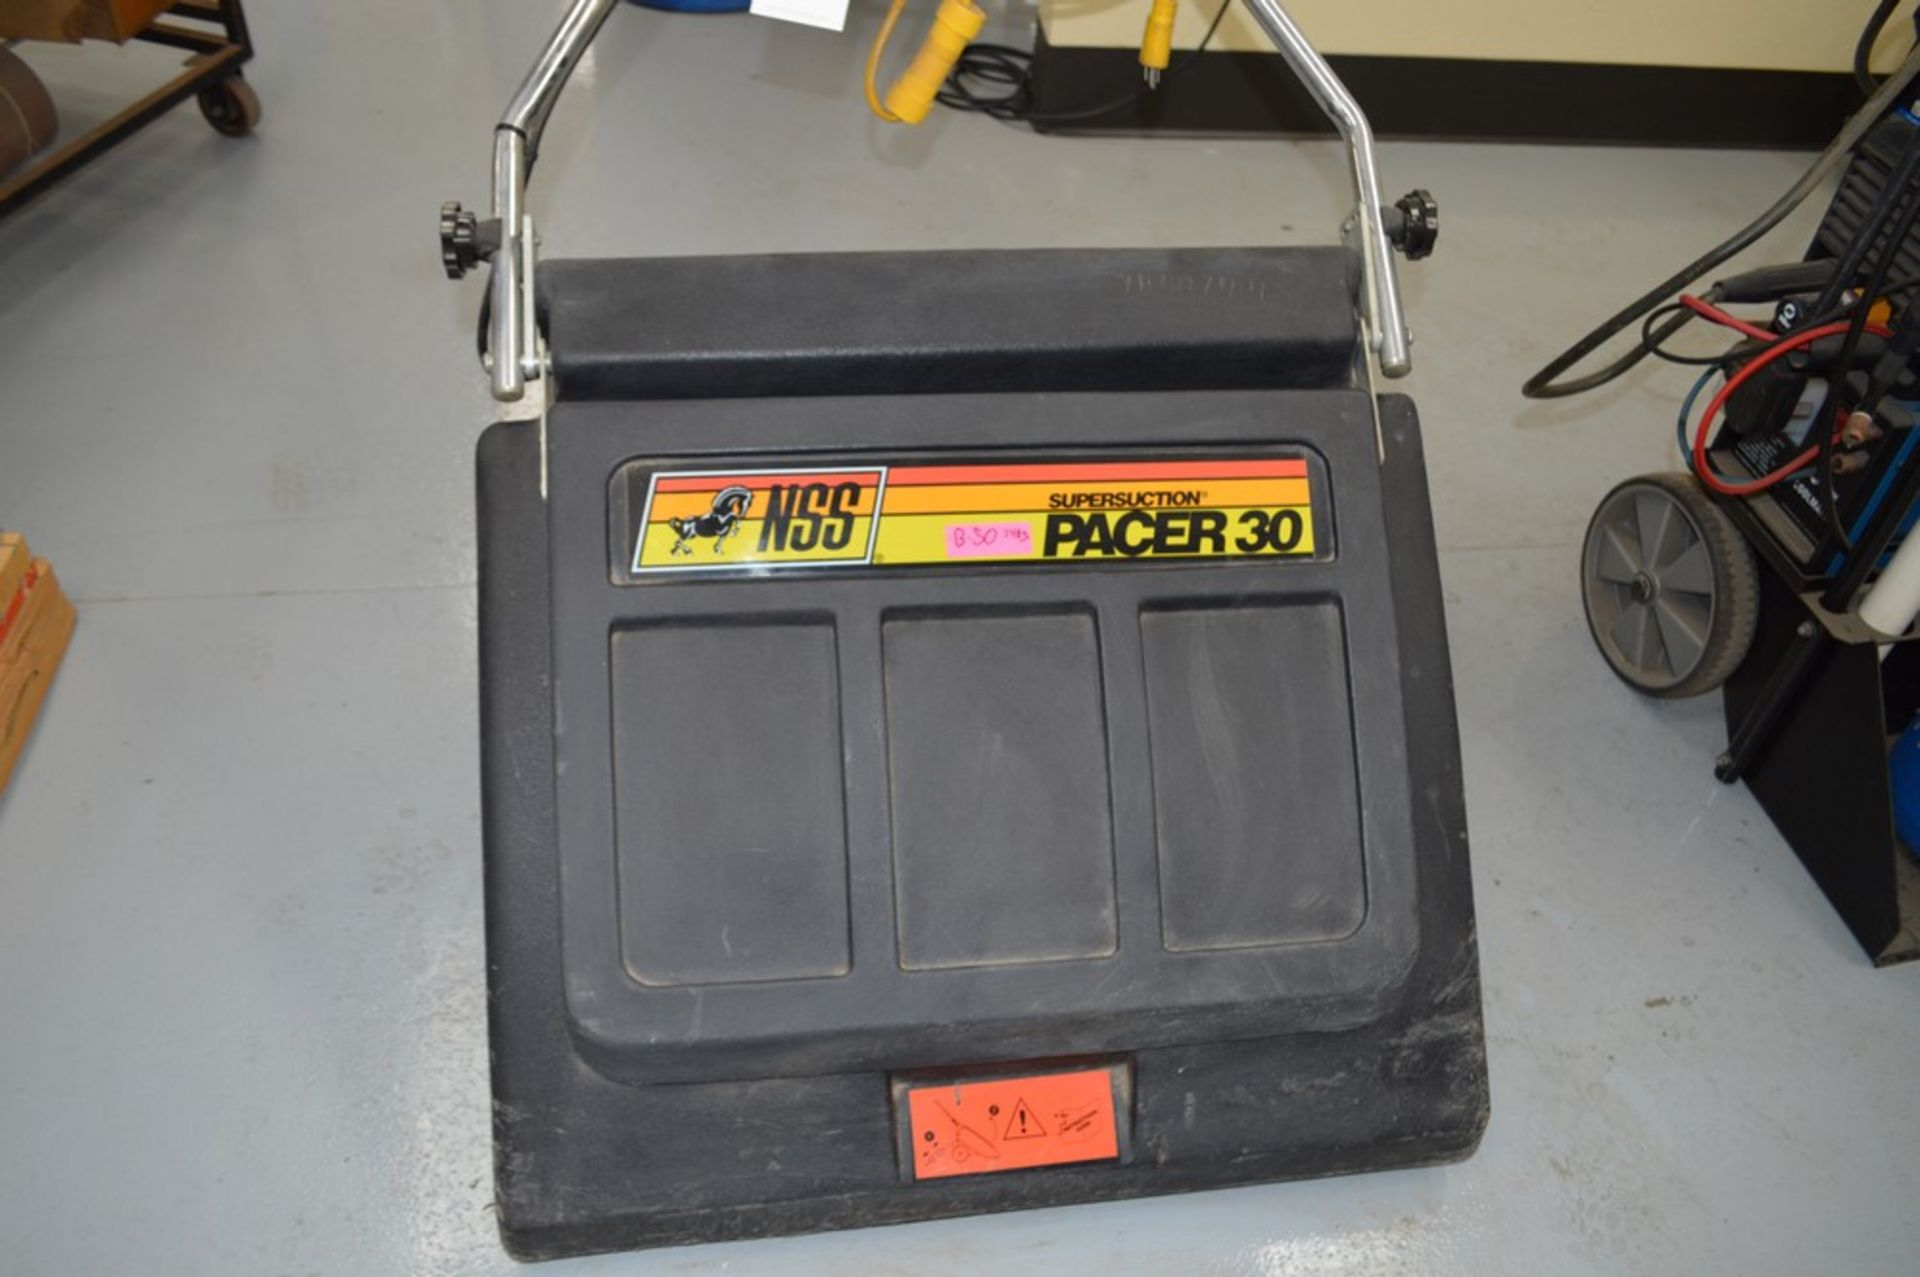 NSS, Super Suction Floor Vacuum Cleaner Model Pacer 30 - Image 3 of 5